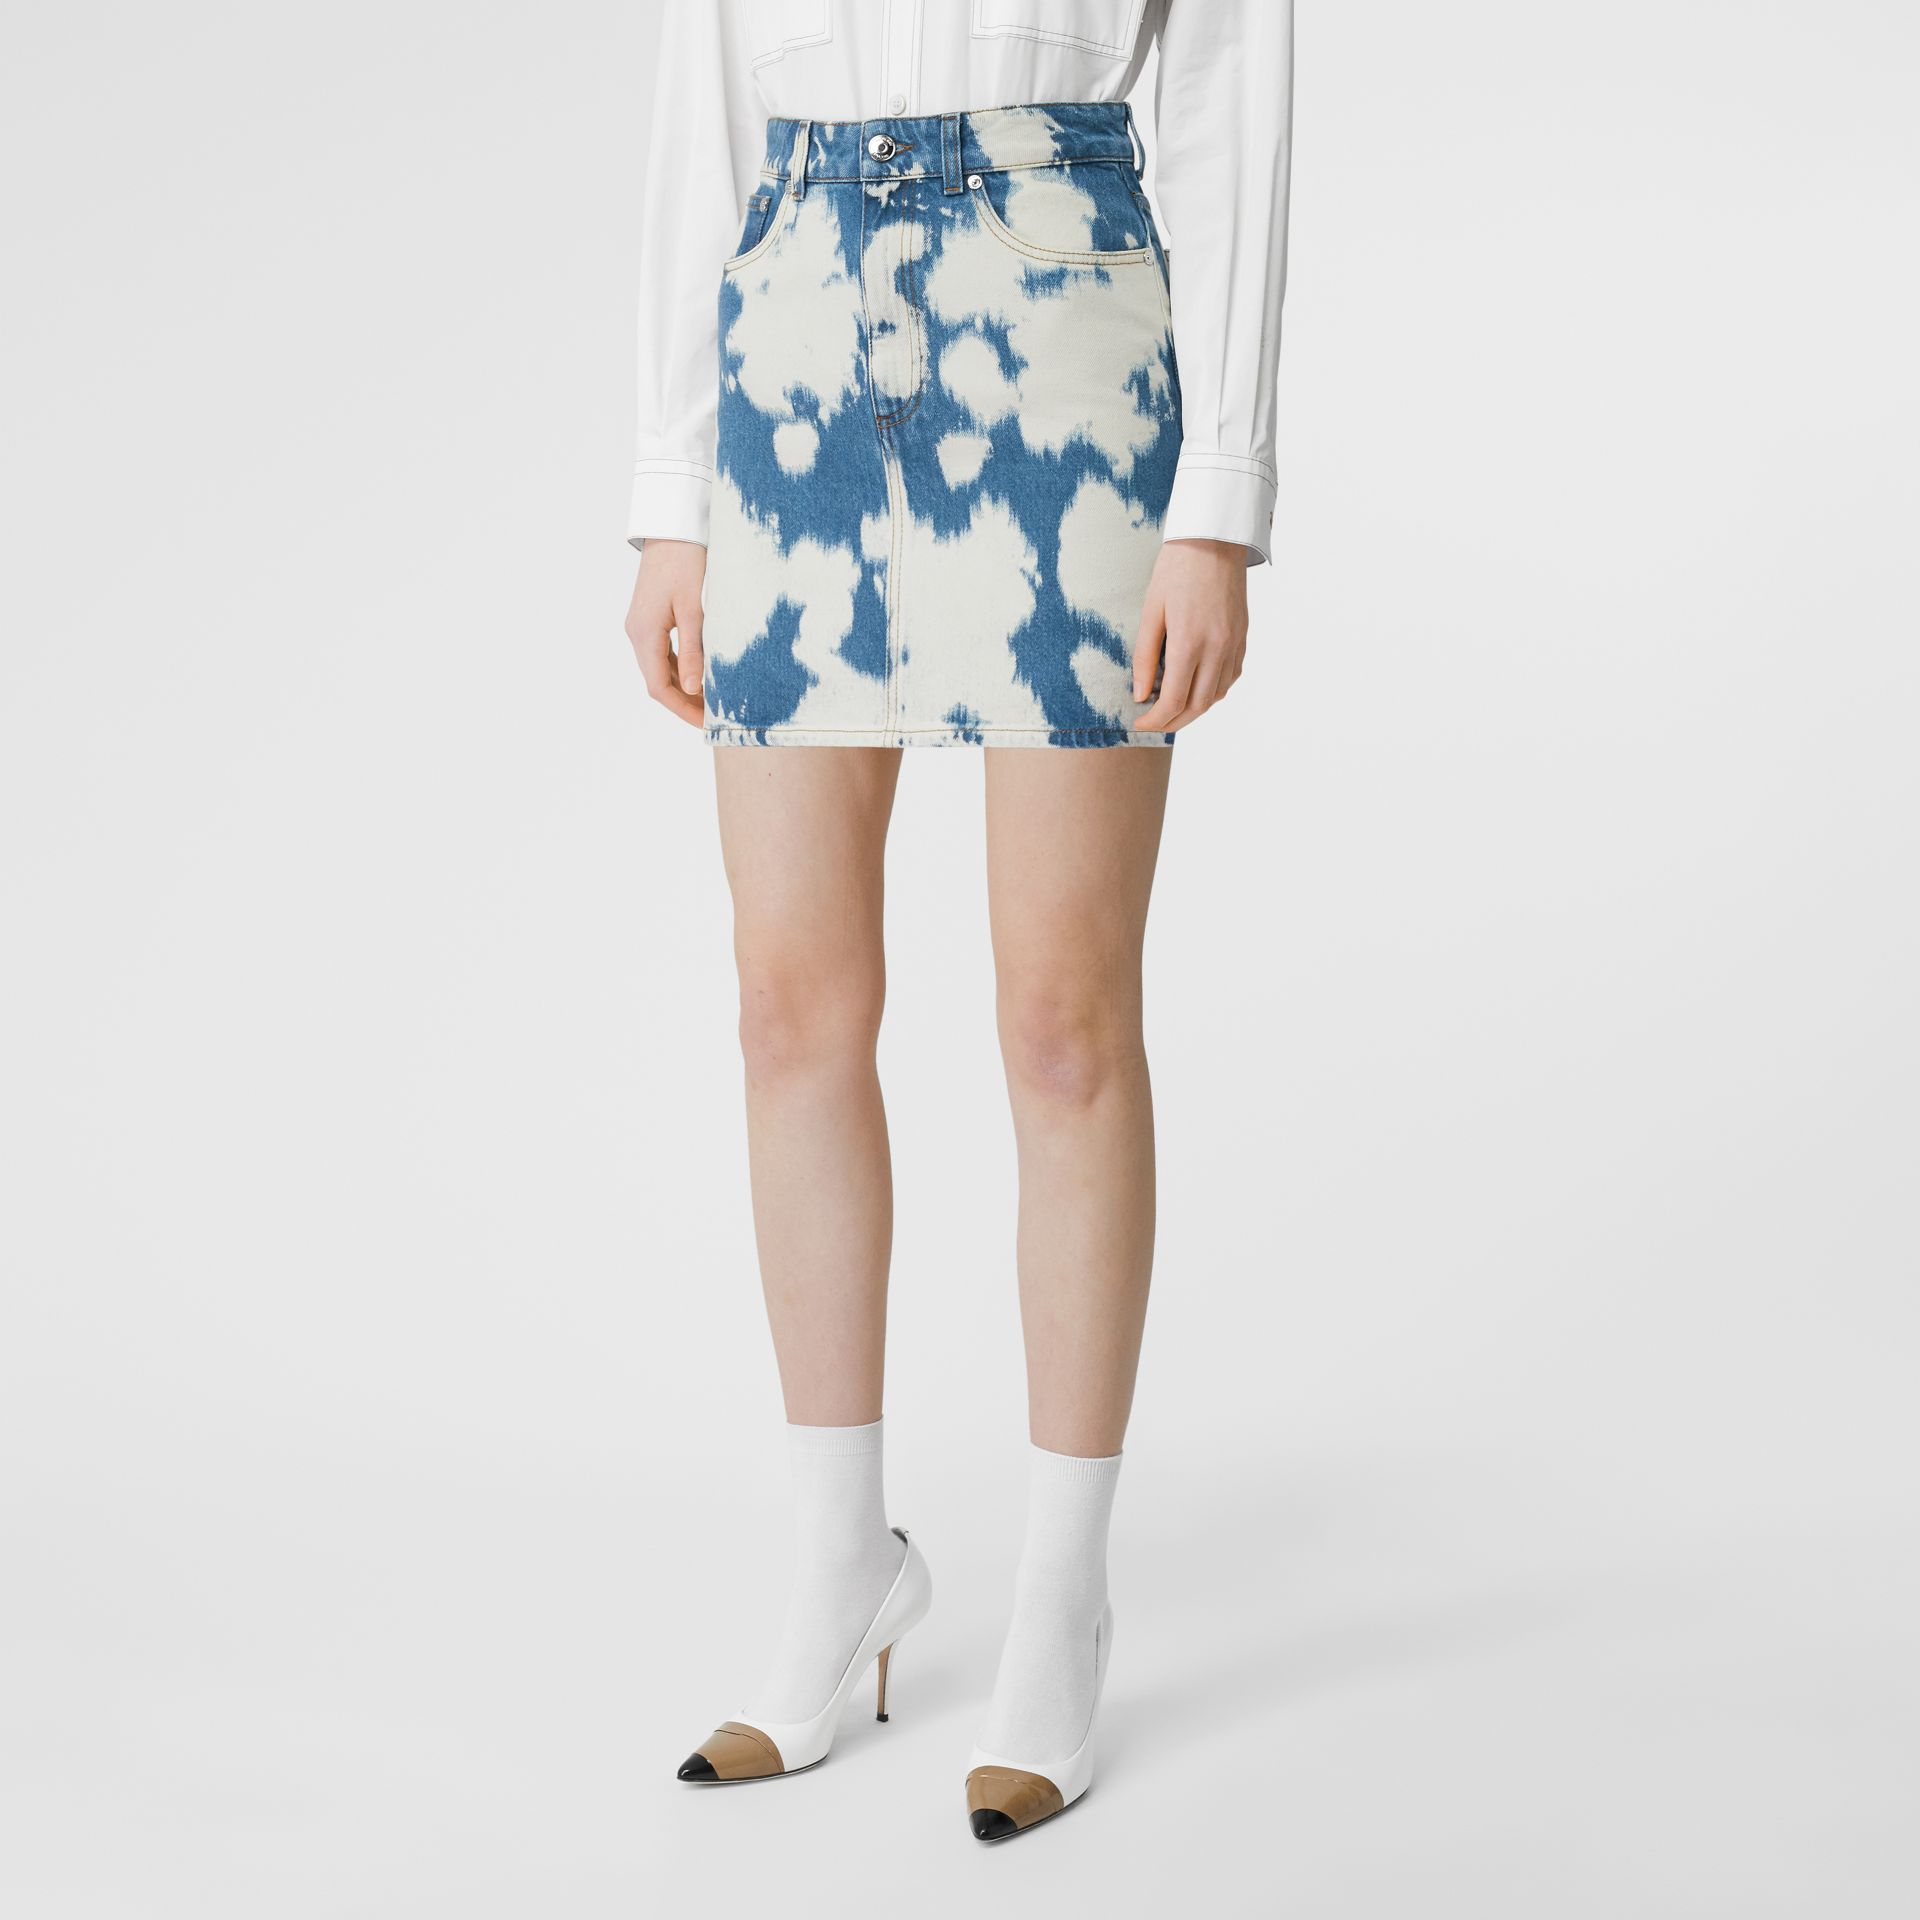 Monogram Motif Bleached Denim Mini Skirt in Blue - Women | Burberry - gallery image 4